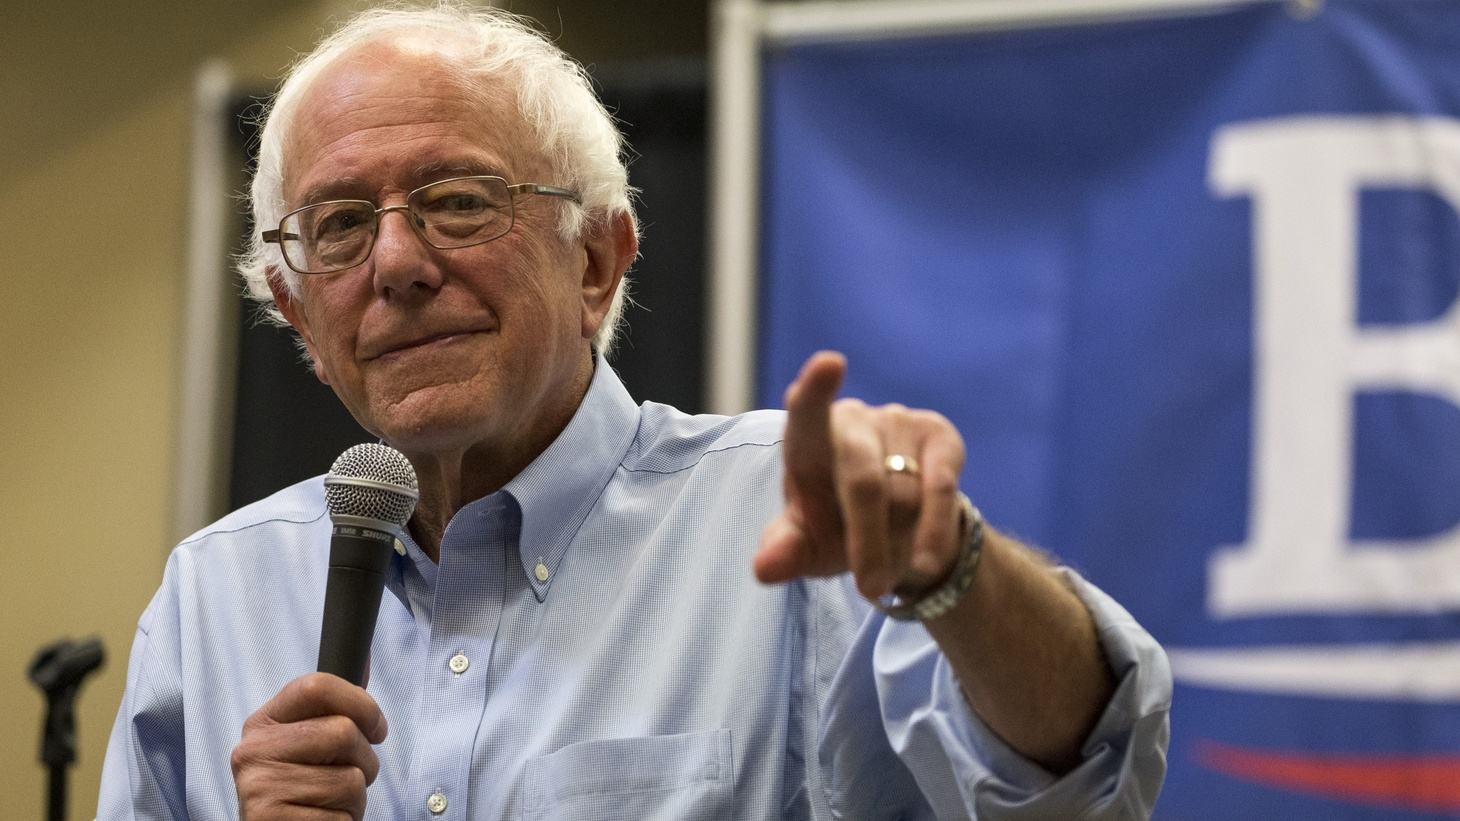 As discord grows among Democrats, the presidential candidates look ahead to the June 7 primaries. Does Sanders have a realistic path to the nomination?